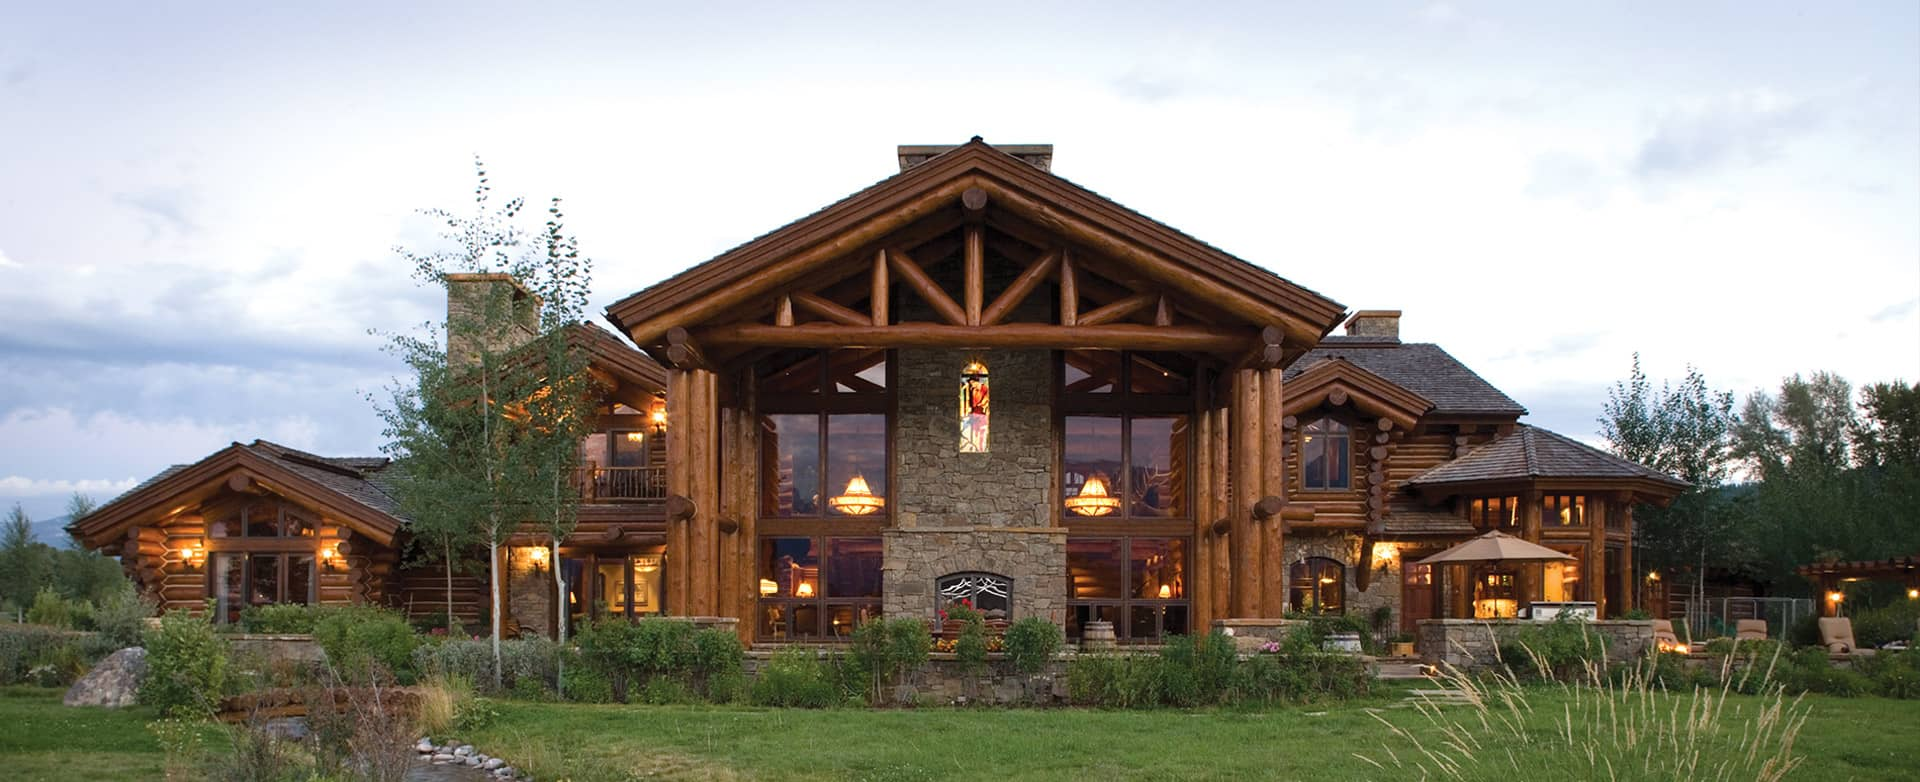 Precisioncraft luxury timber and log homes Home builders designs